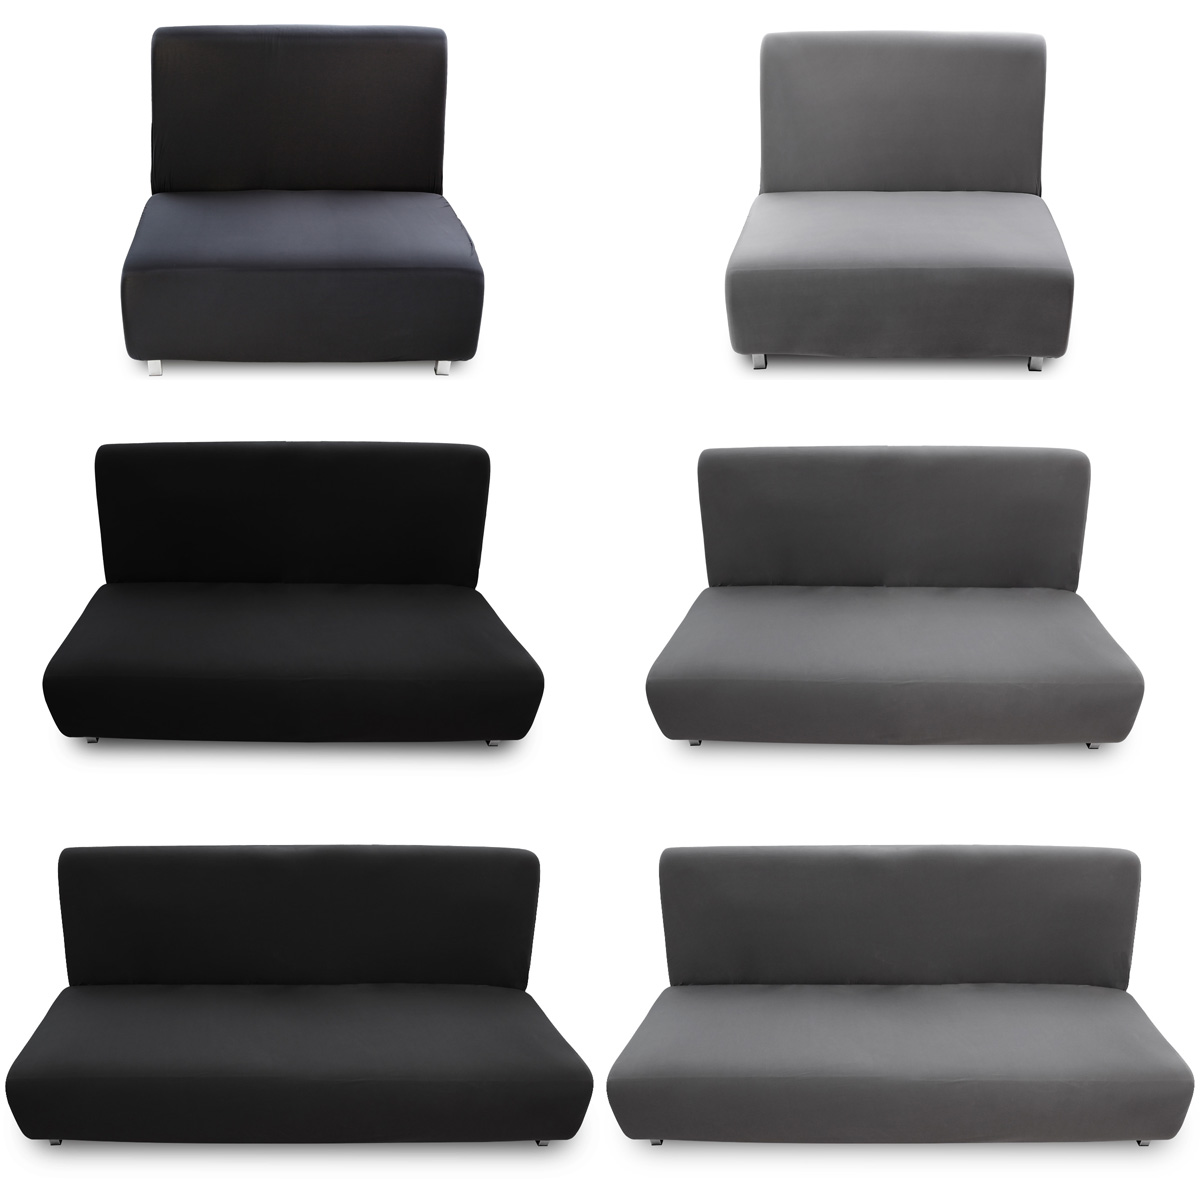 1 3 sitzer sofahusse sofabezug sesselbezug sessel berwurf sofa husse m belschutz ebay. Black Bedroom Furniture Sets. Home Design Ideas